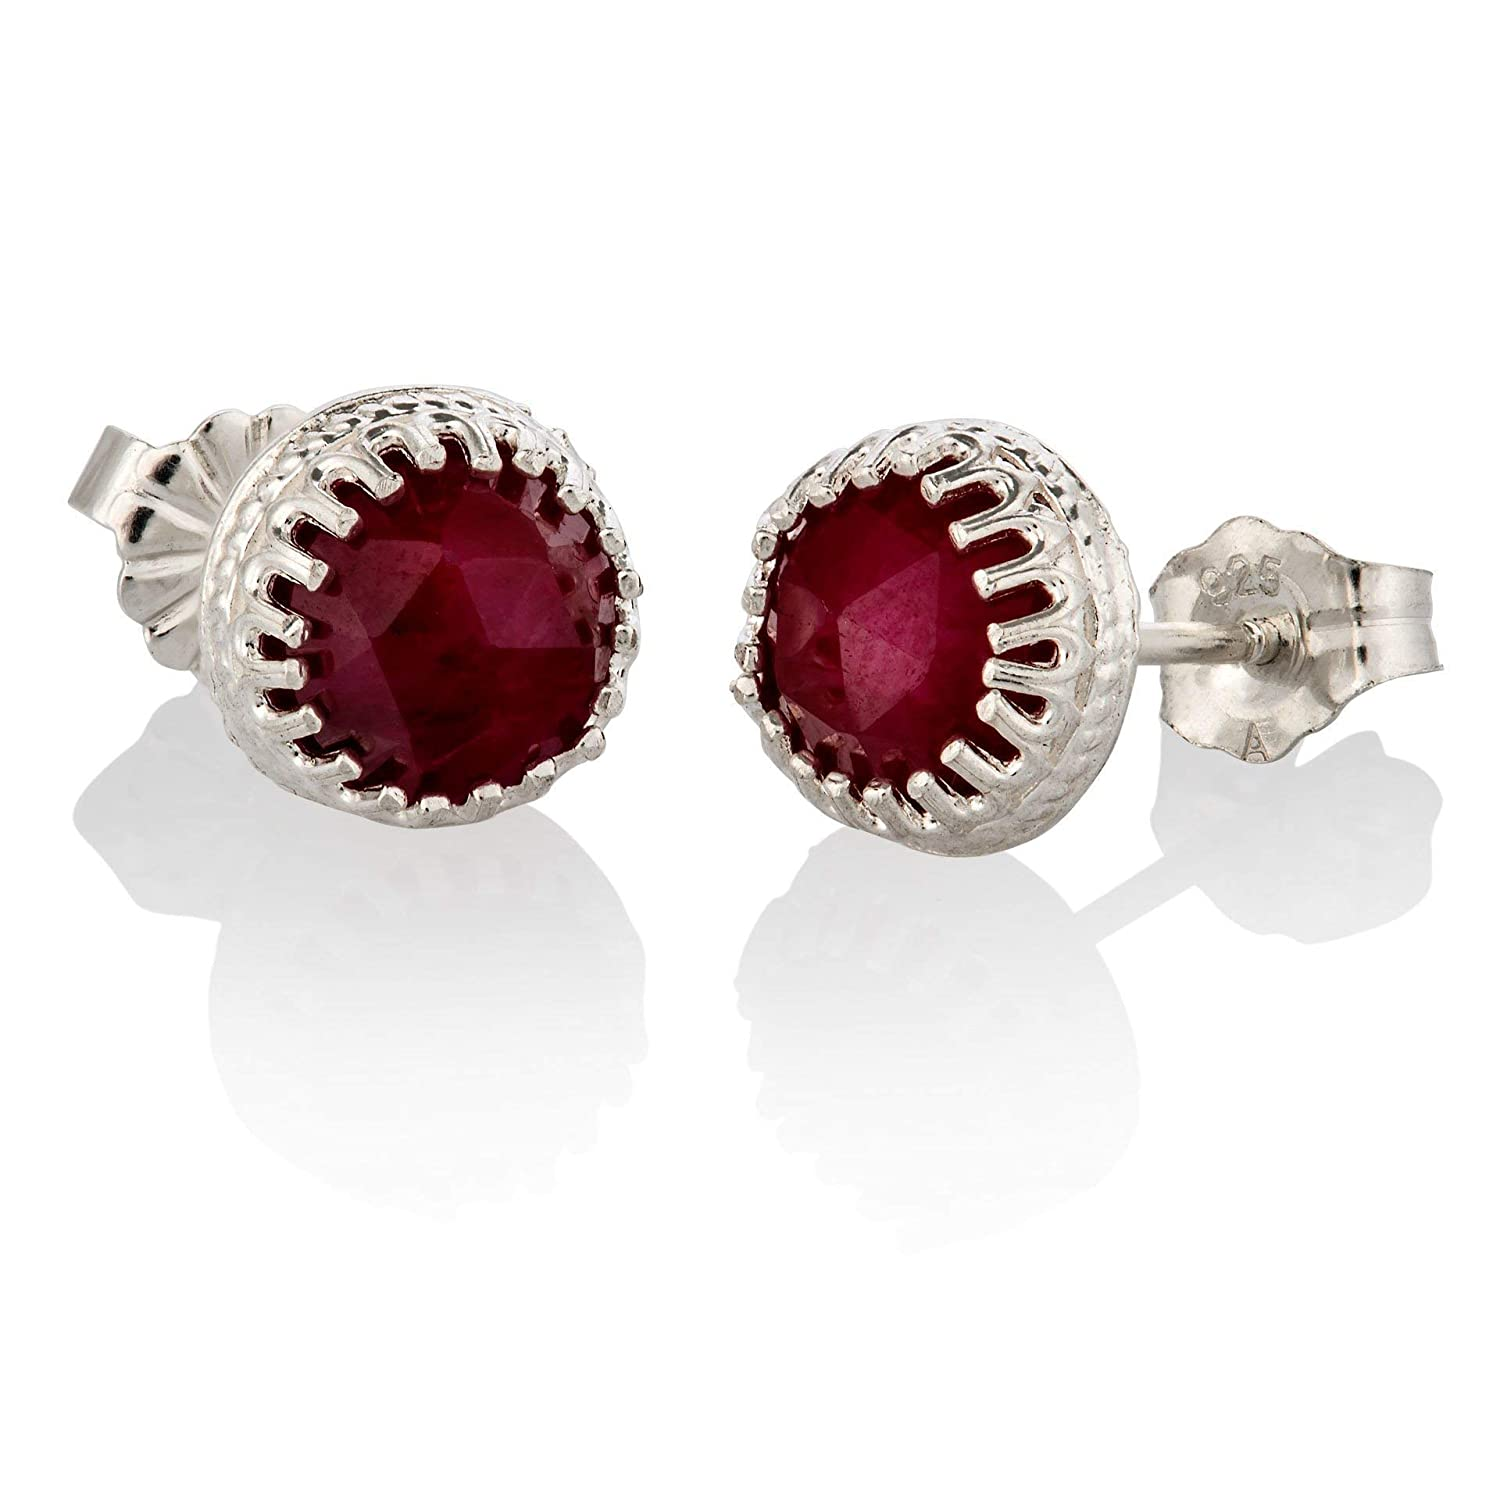 402823f3b Amazon.com: Sterling Silver Ruby Earrings July birthstone Natural 6mm Studs  Red Ruby: Handmade